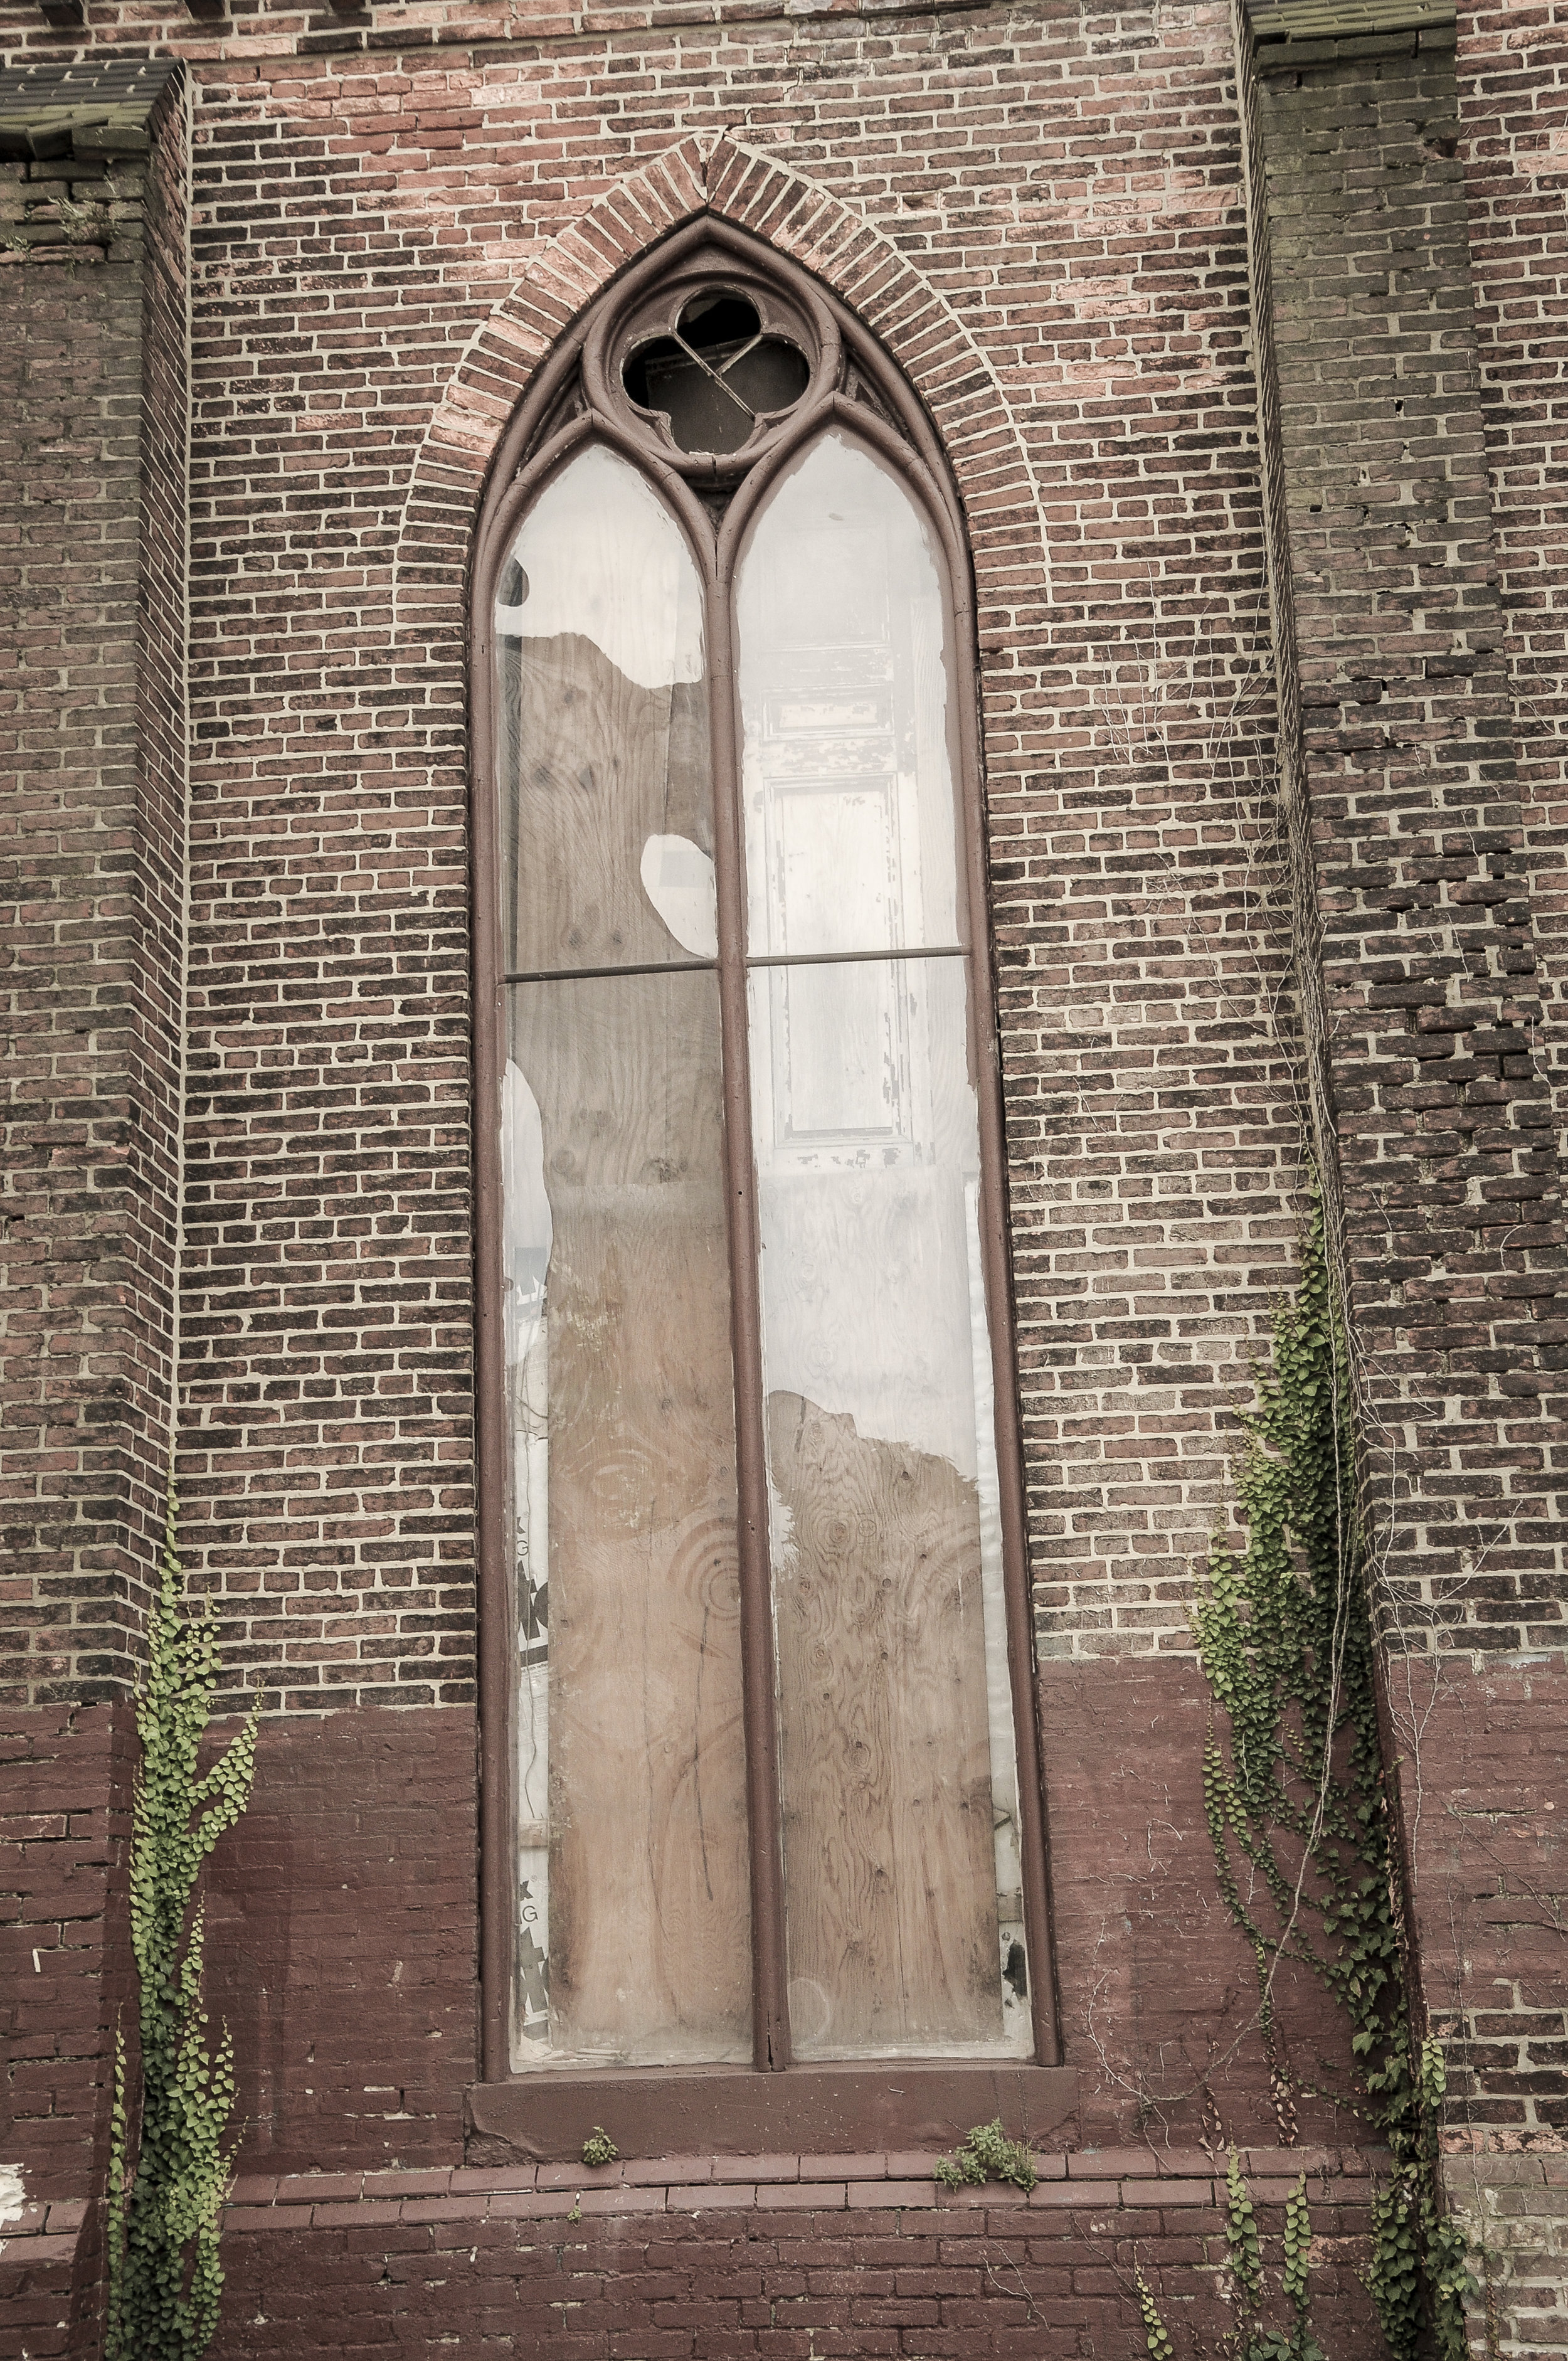 Window of an old church in Baltimore Photo: Rose Anderson, August 2018